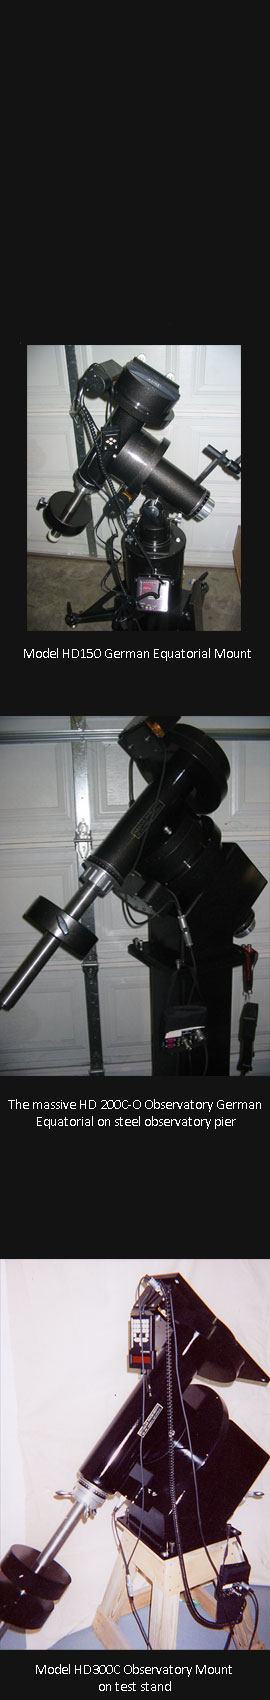 Parallax Instruments, Inc. - German Equatorial Mounts (side) Telescopes and Rotating Rings and Mounts